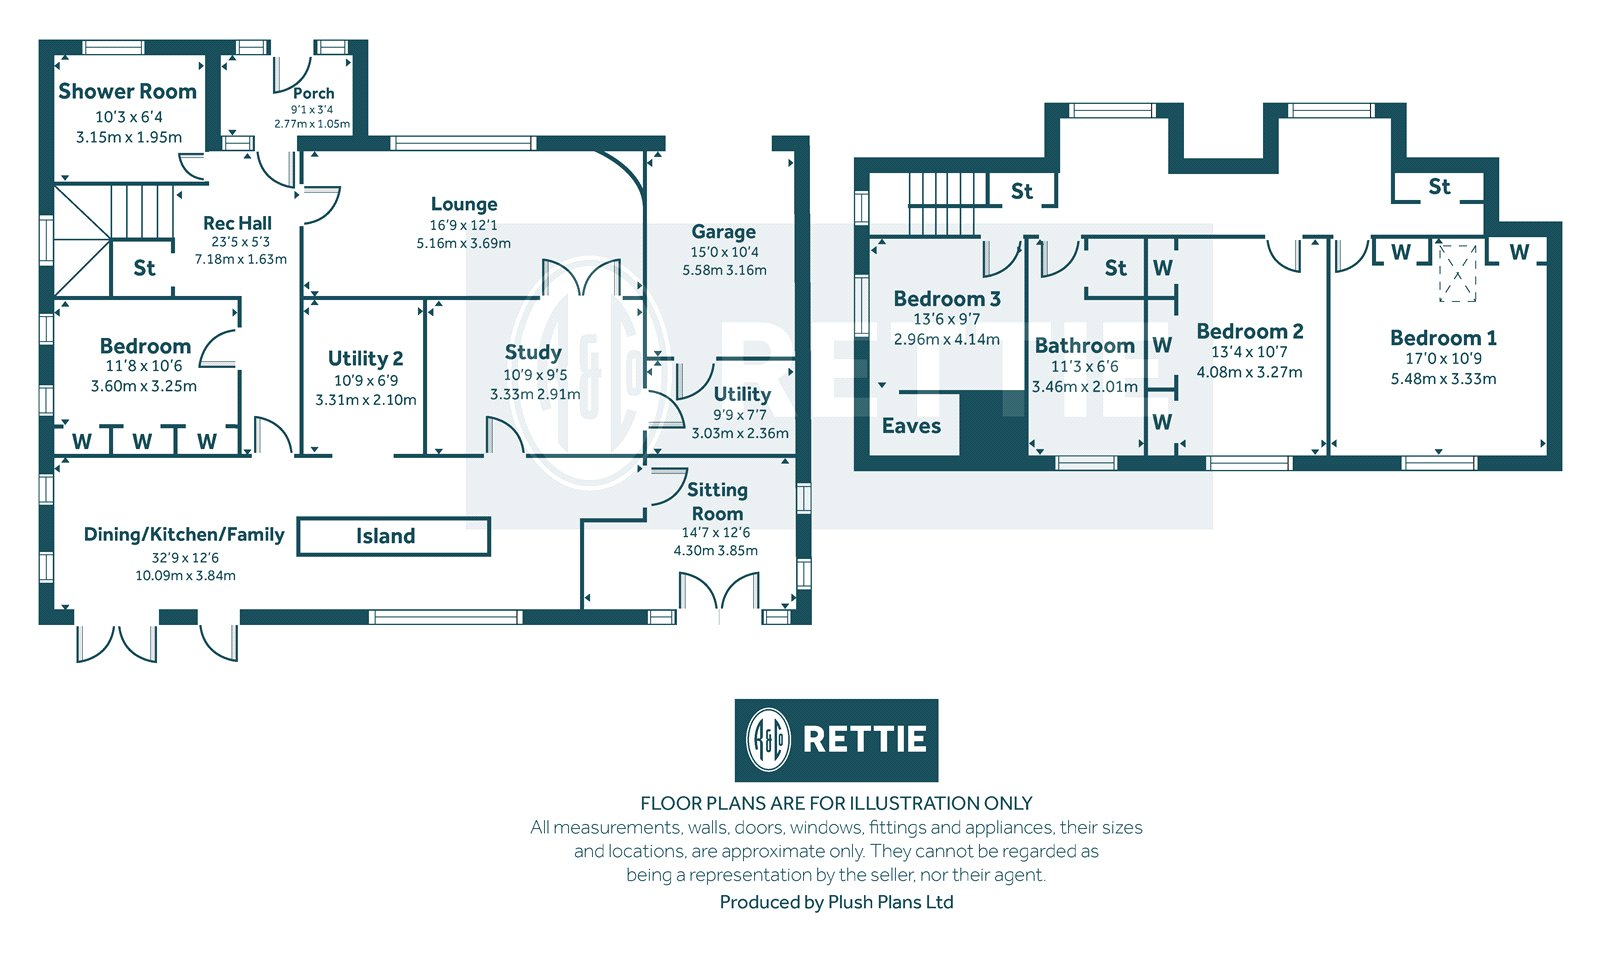 Floorplans for Mearns Road, Newton Mearns, Glasgow, G77